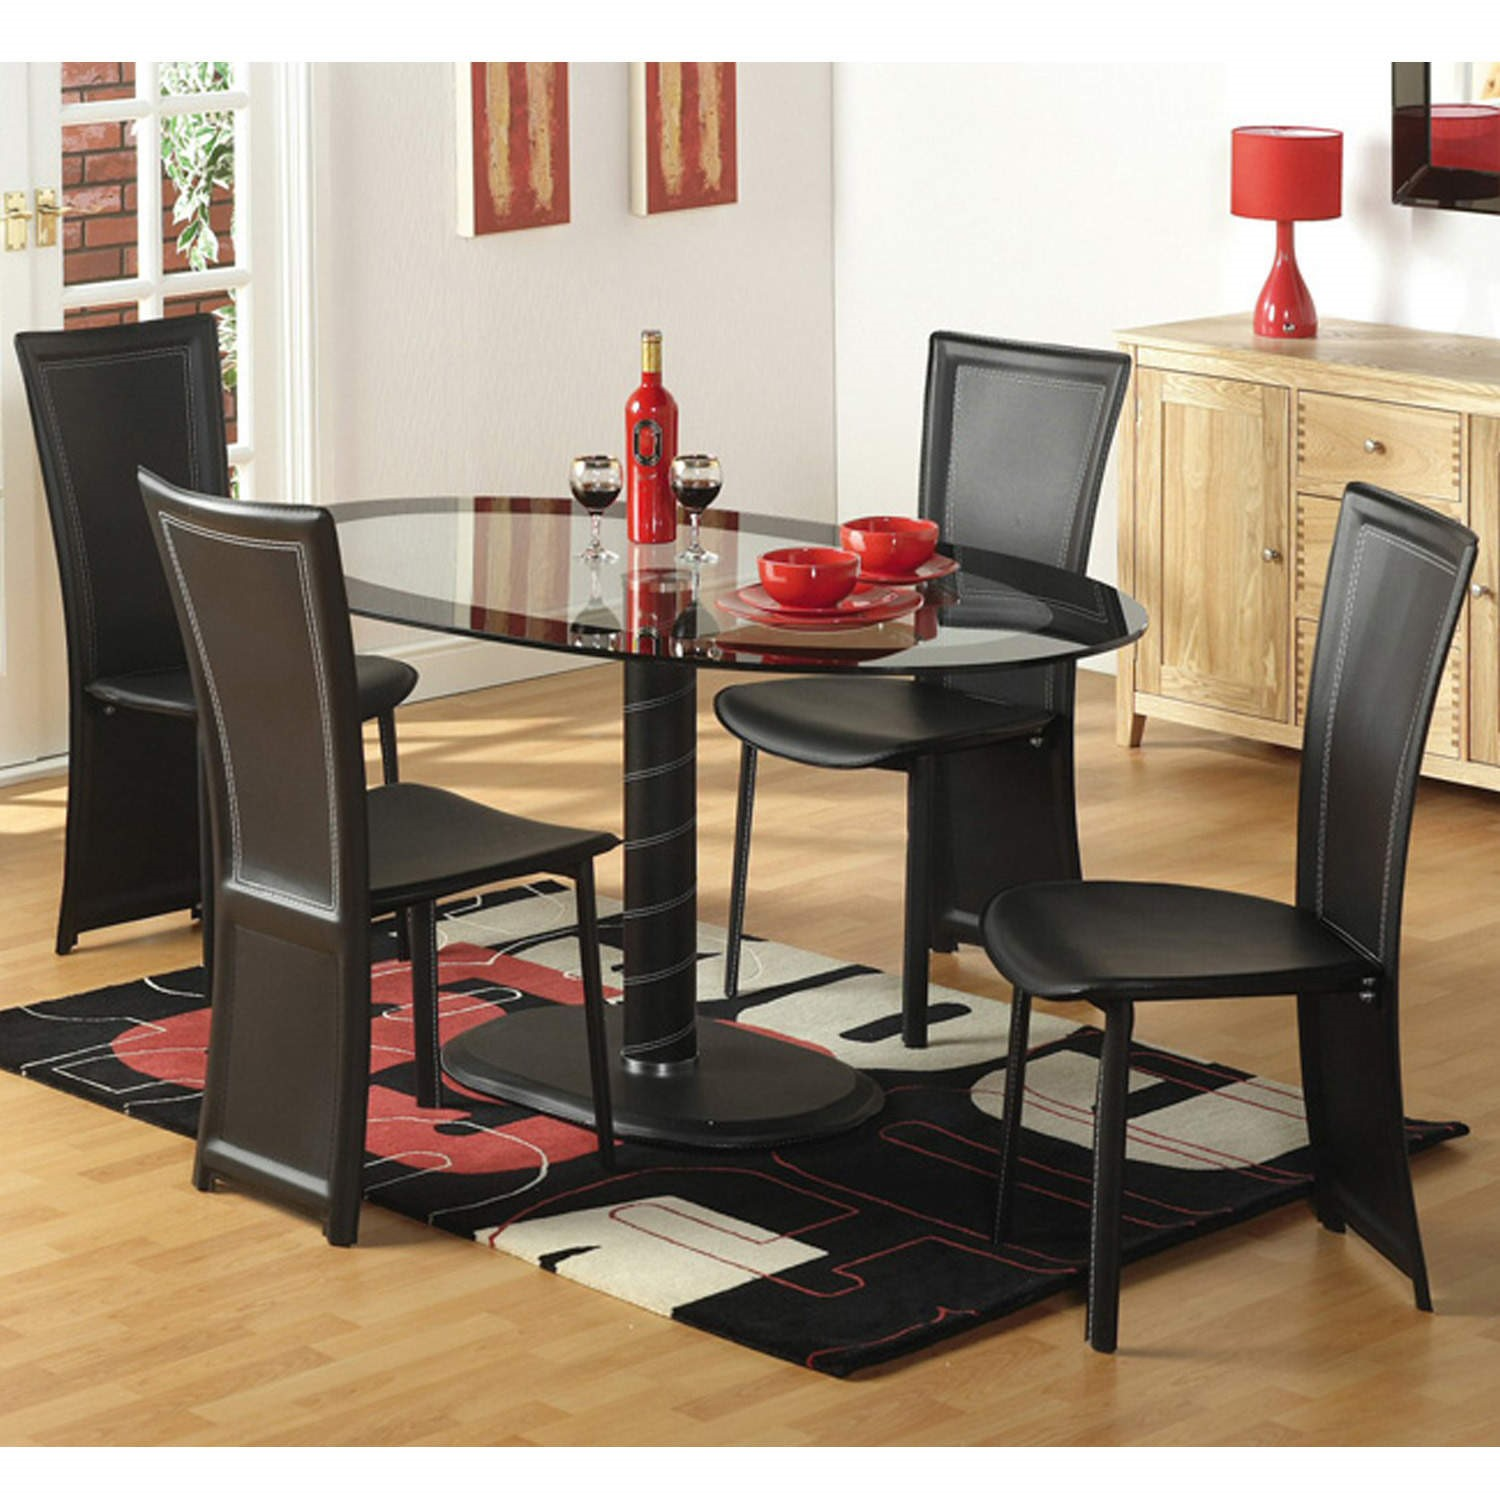 Seconique Cameo Oval Dining Set 4 Black Faux Leather Dining Chairs